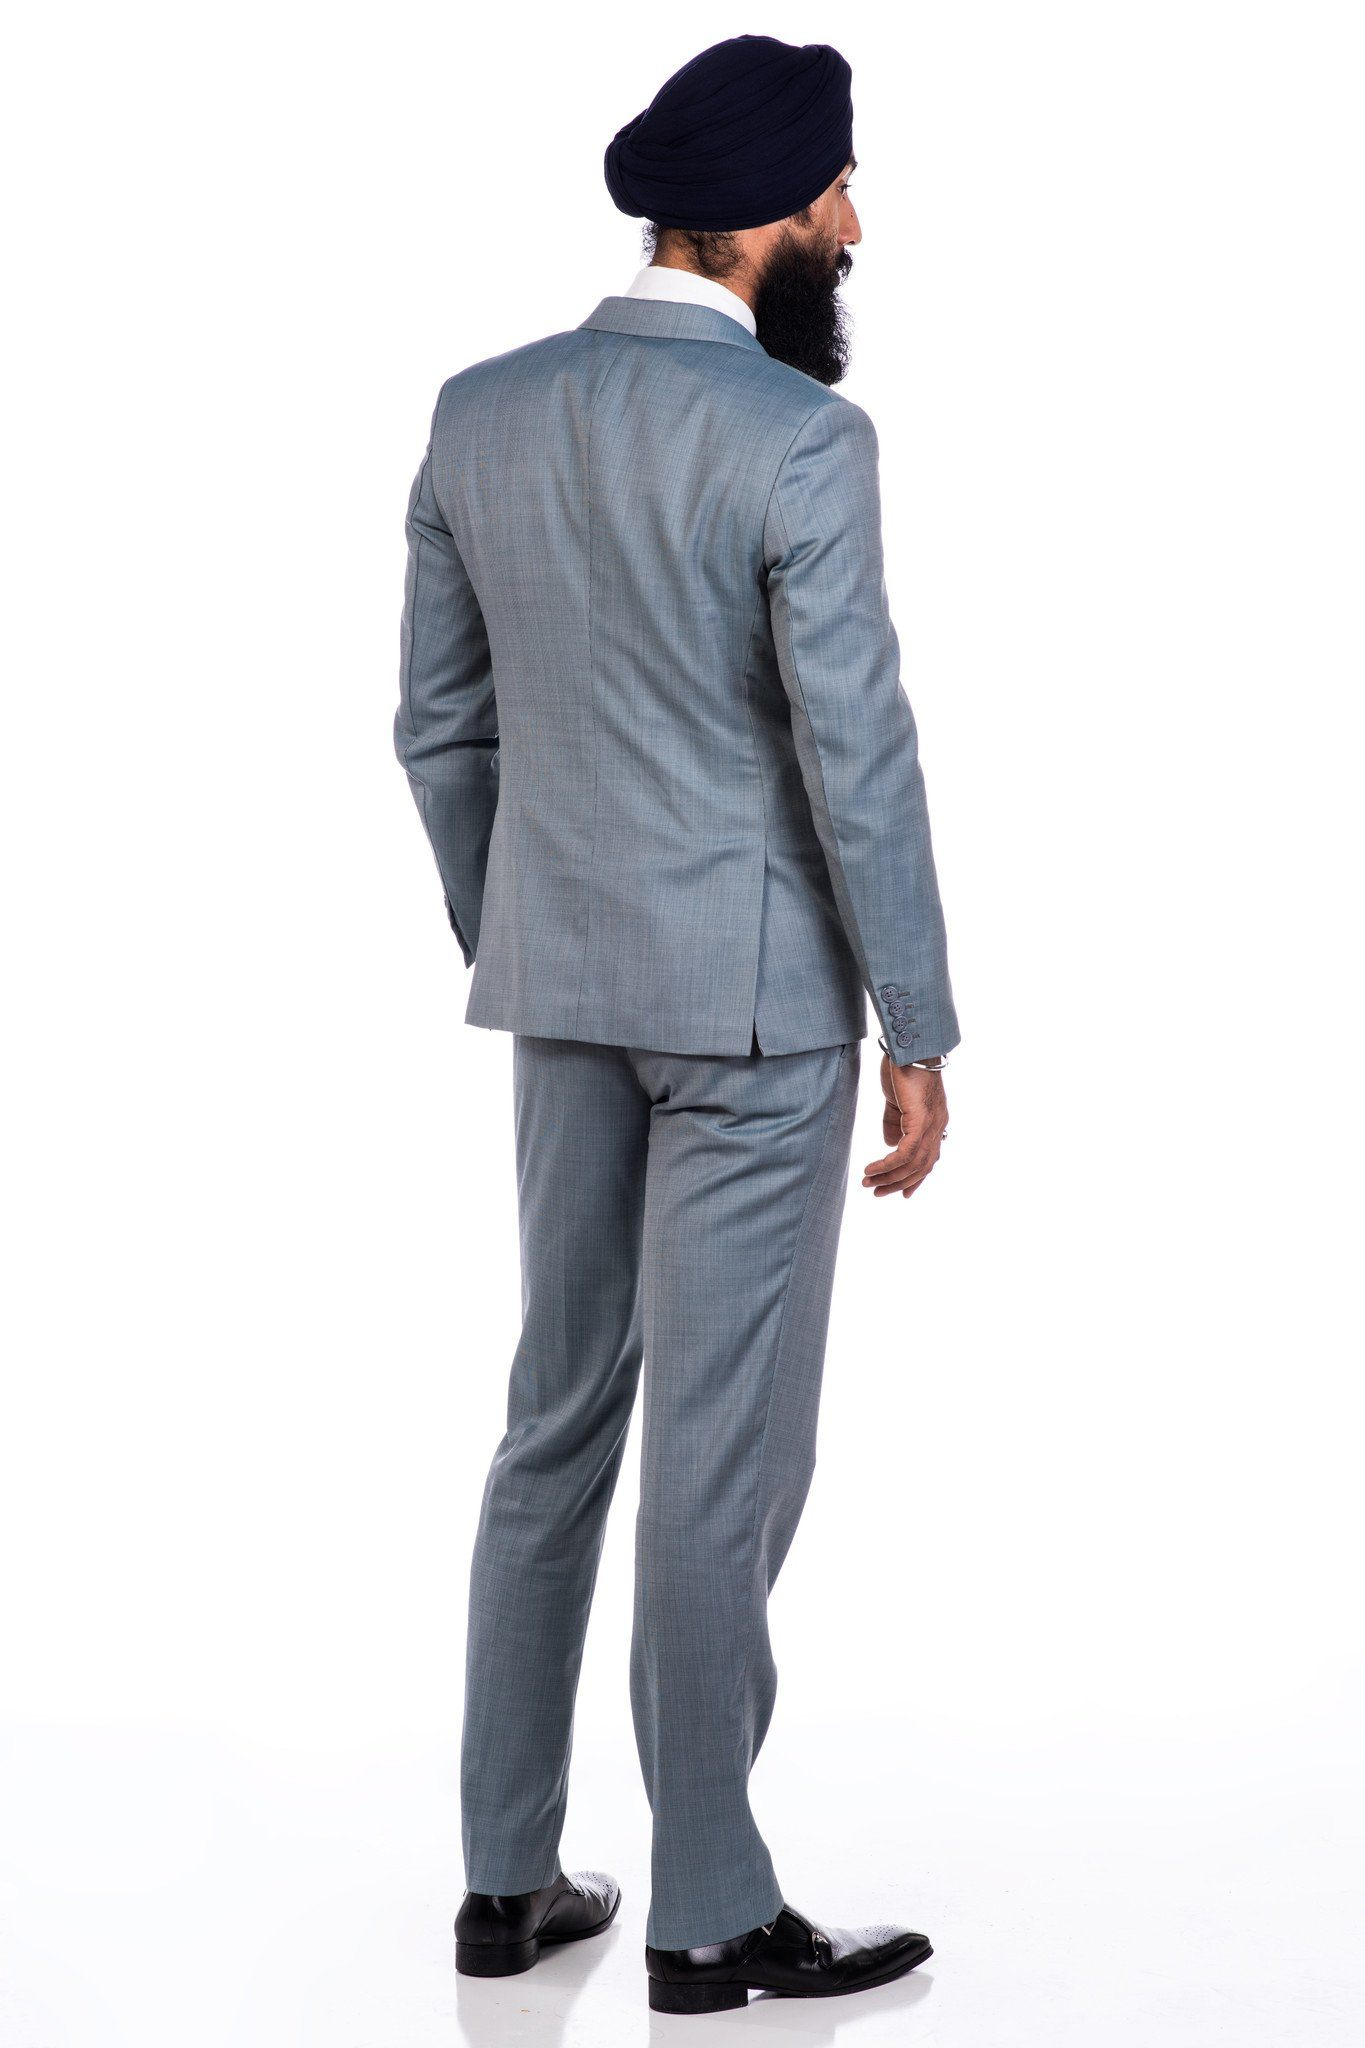 Sootz Cashmere Wool Teal Gray Blend Suit - Sootz